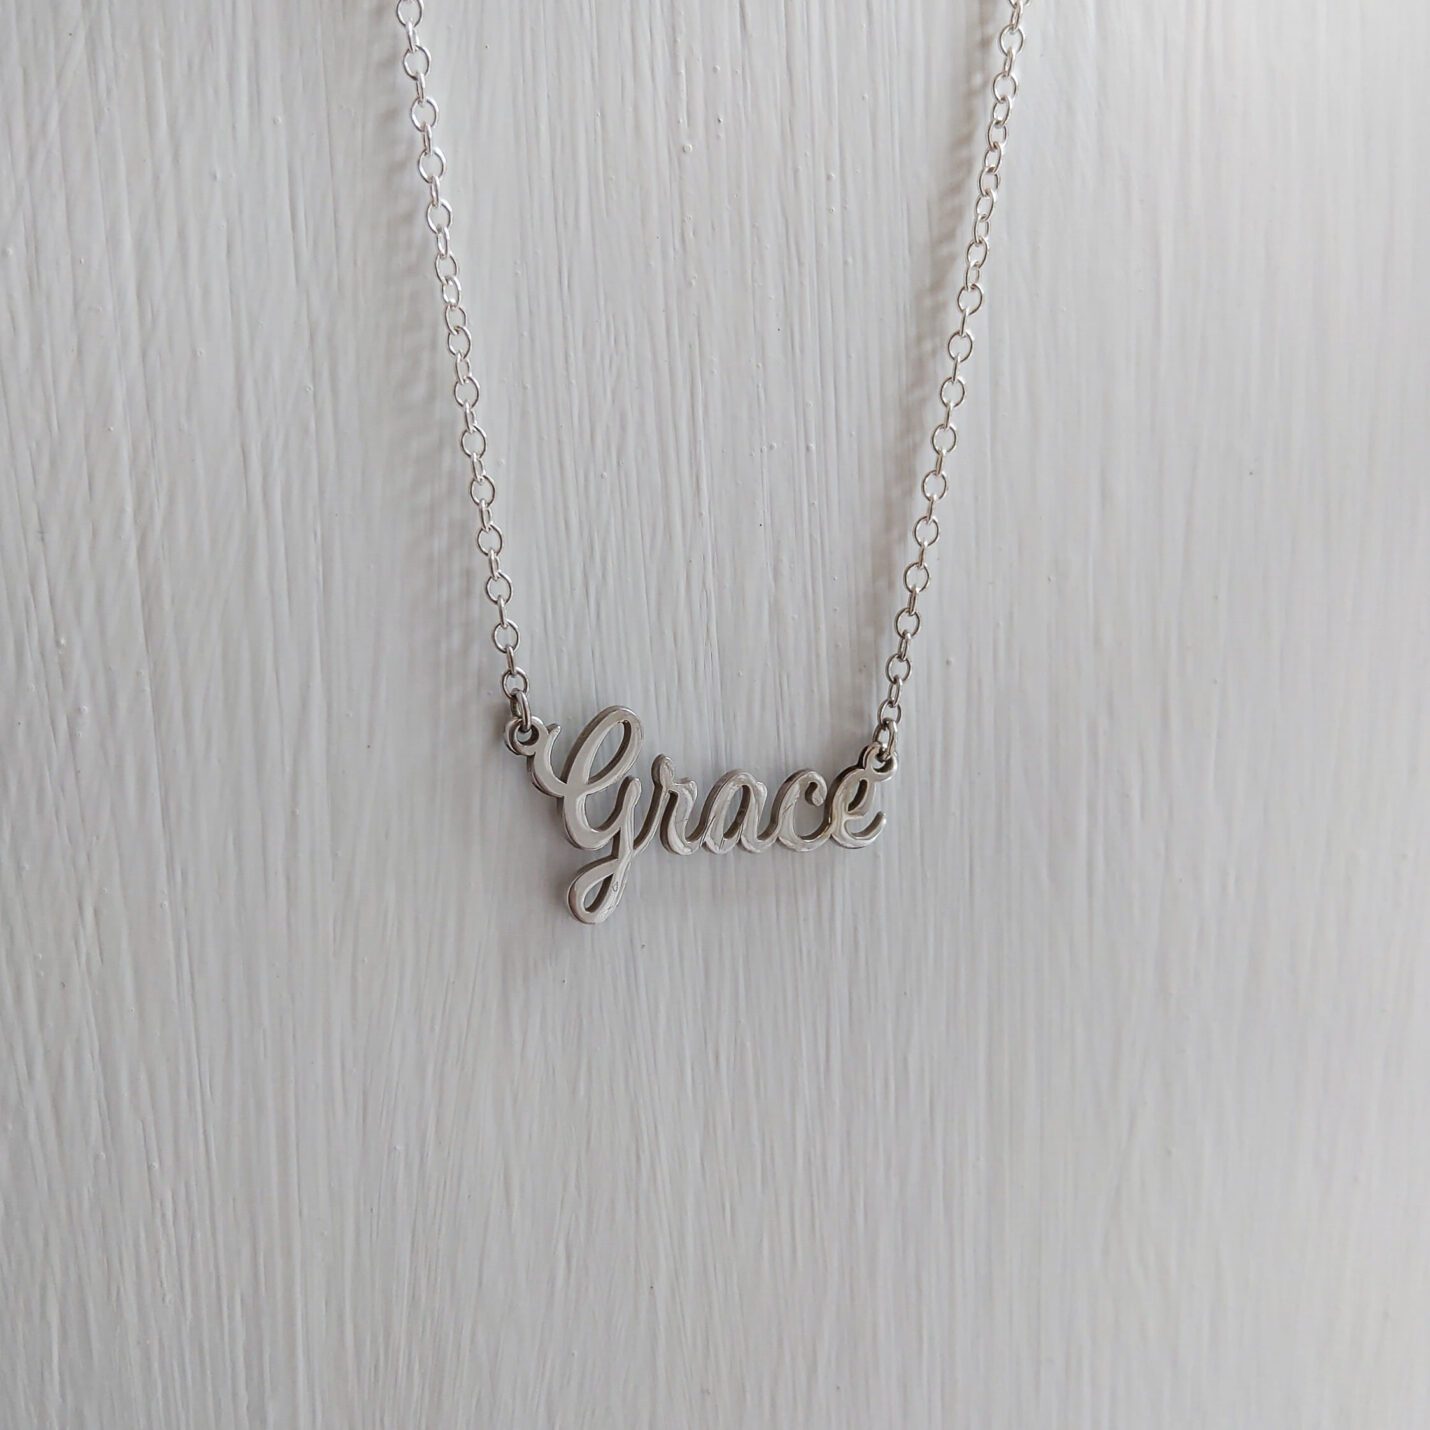 Custom Made Name Necklace | Script Name Necklaces @ Murphy Jewellers